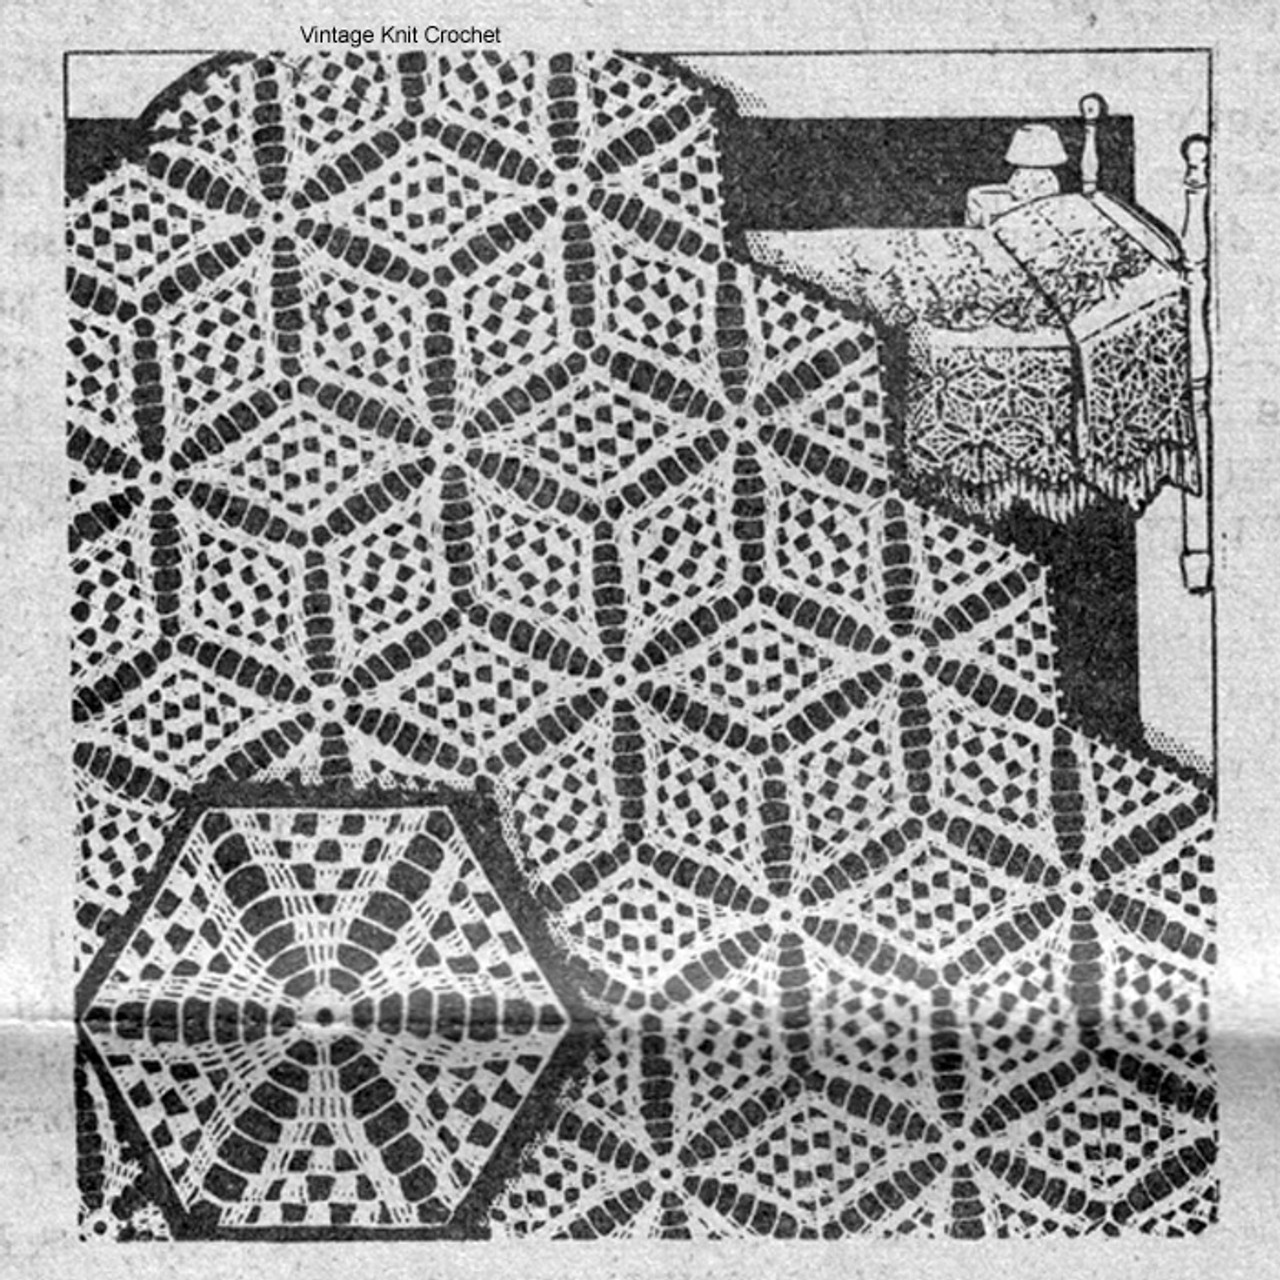 Mail Order 7240, Star of East Crocheted Bedspread Pattern